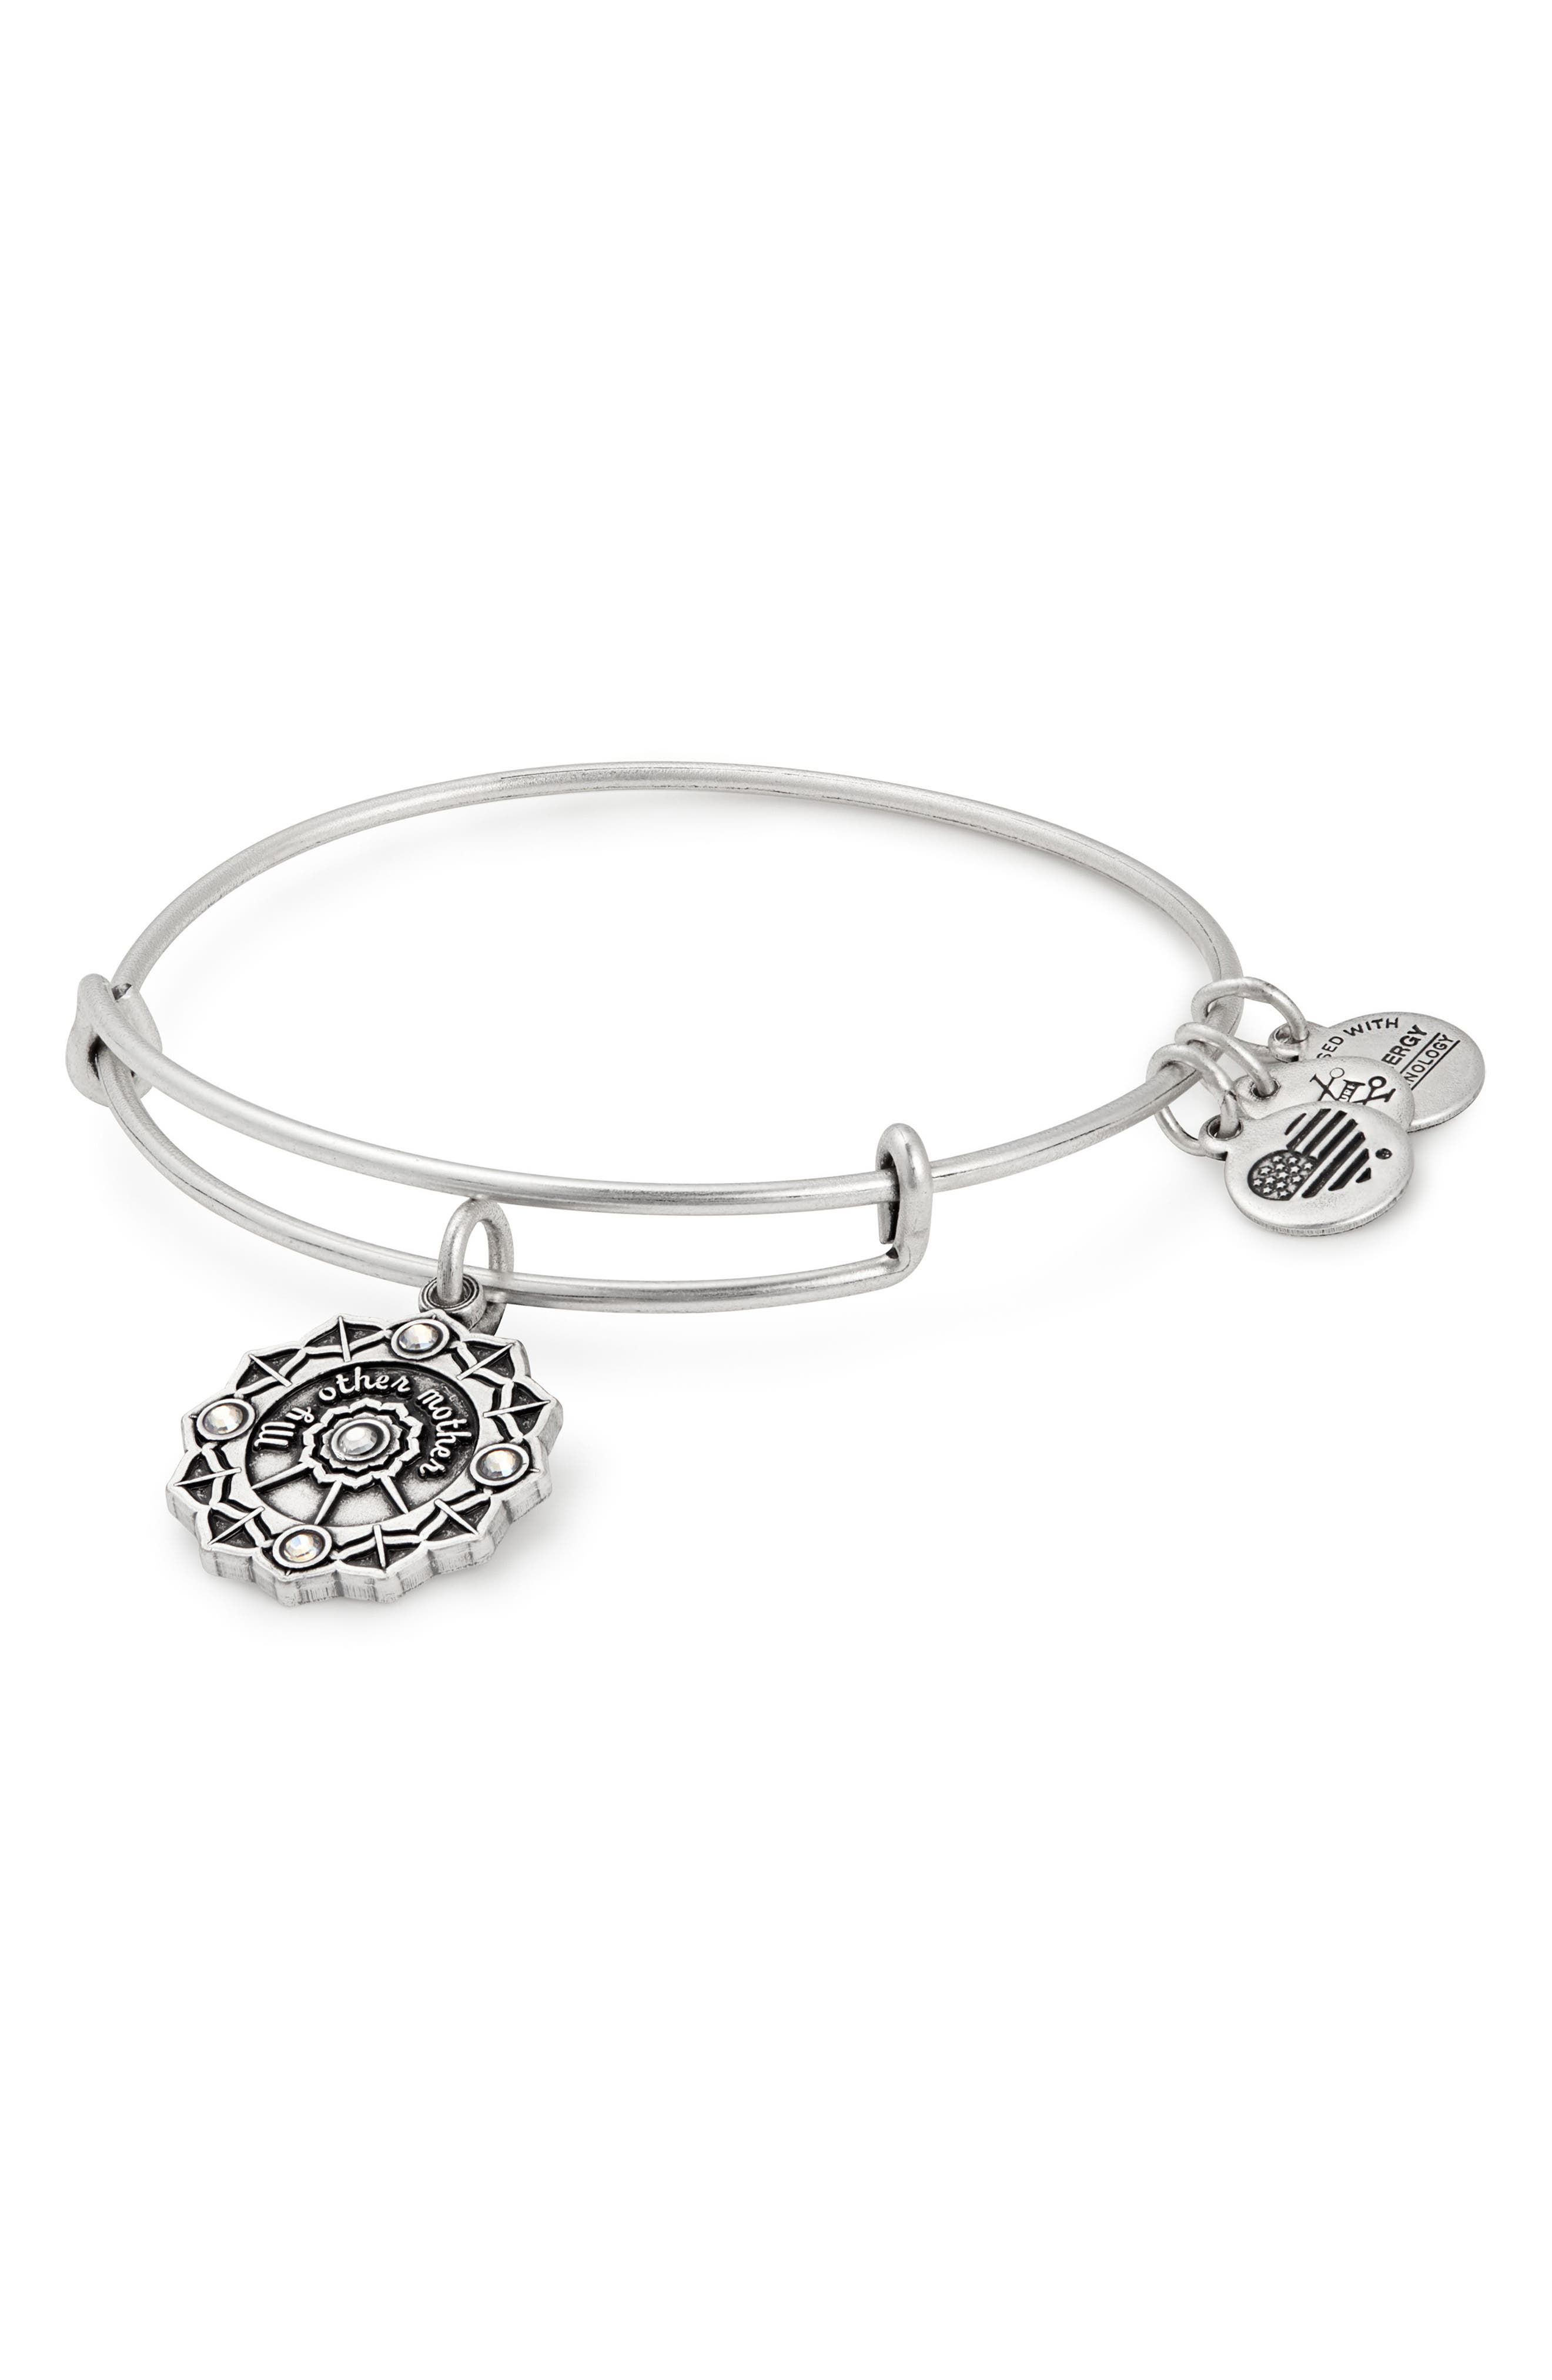 Mother of the Groom Charm Bangle,                             Main thumbnail 1, color,                             040